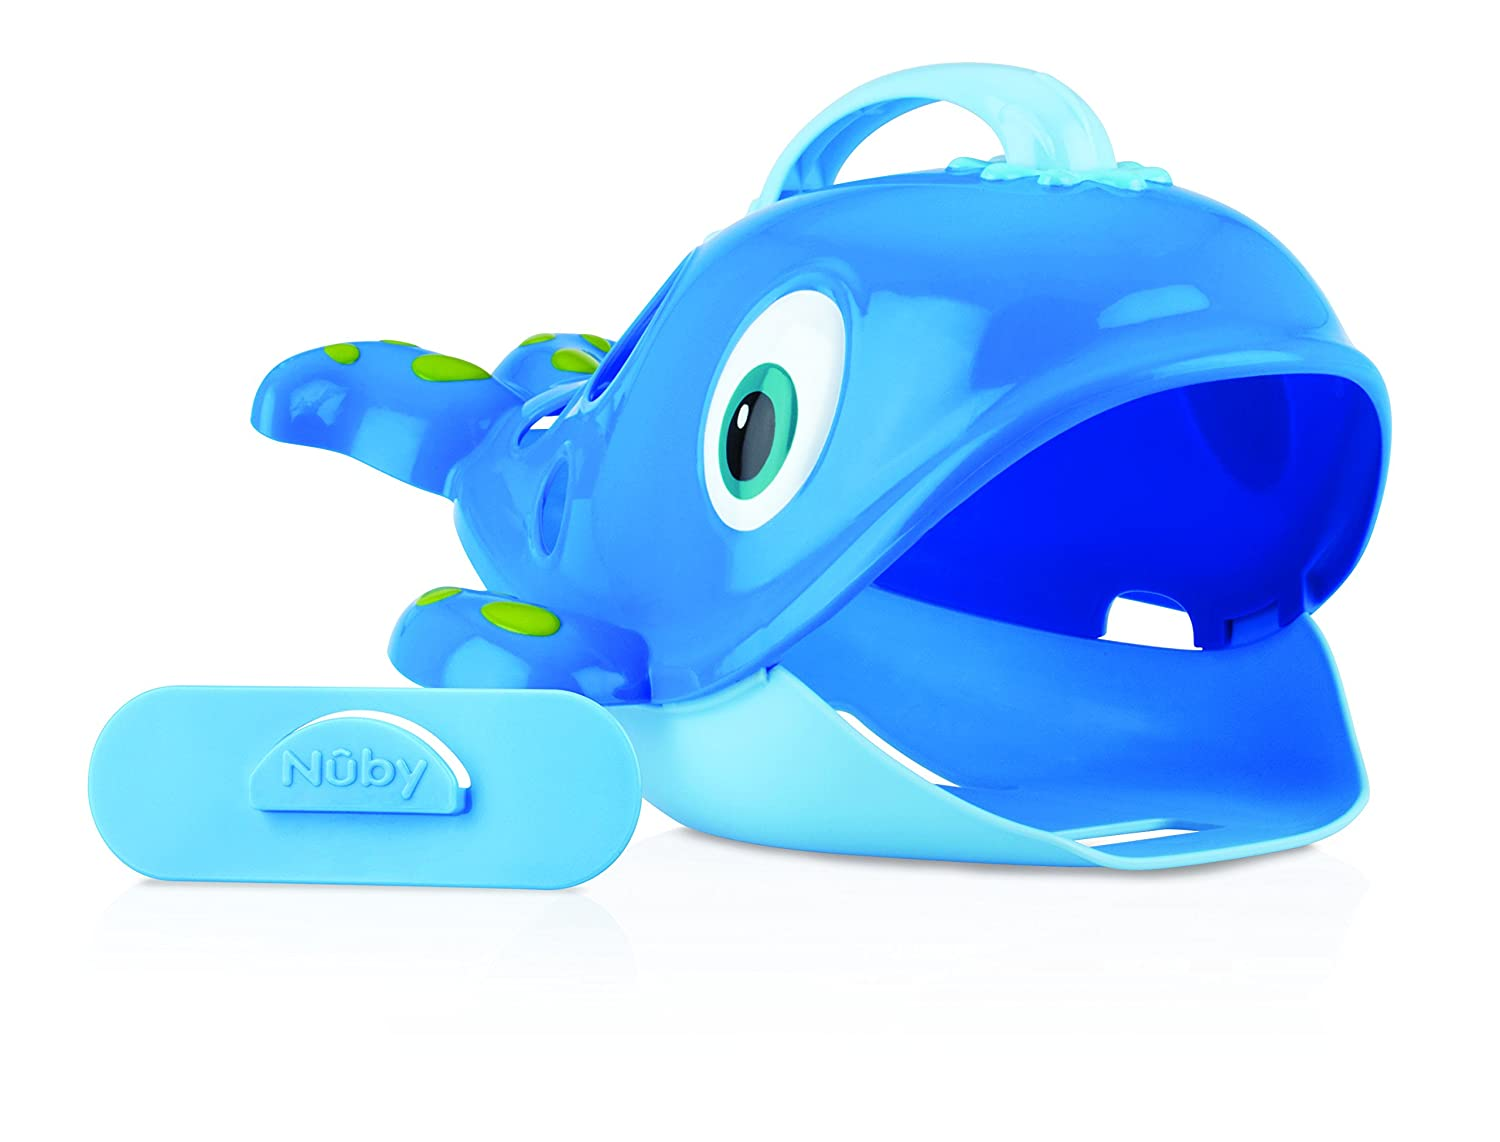 Amazon.com : Nuby Bath Toy Whale Sea Scooper : Bathtub Toy Bags : Baby